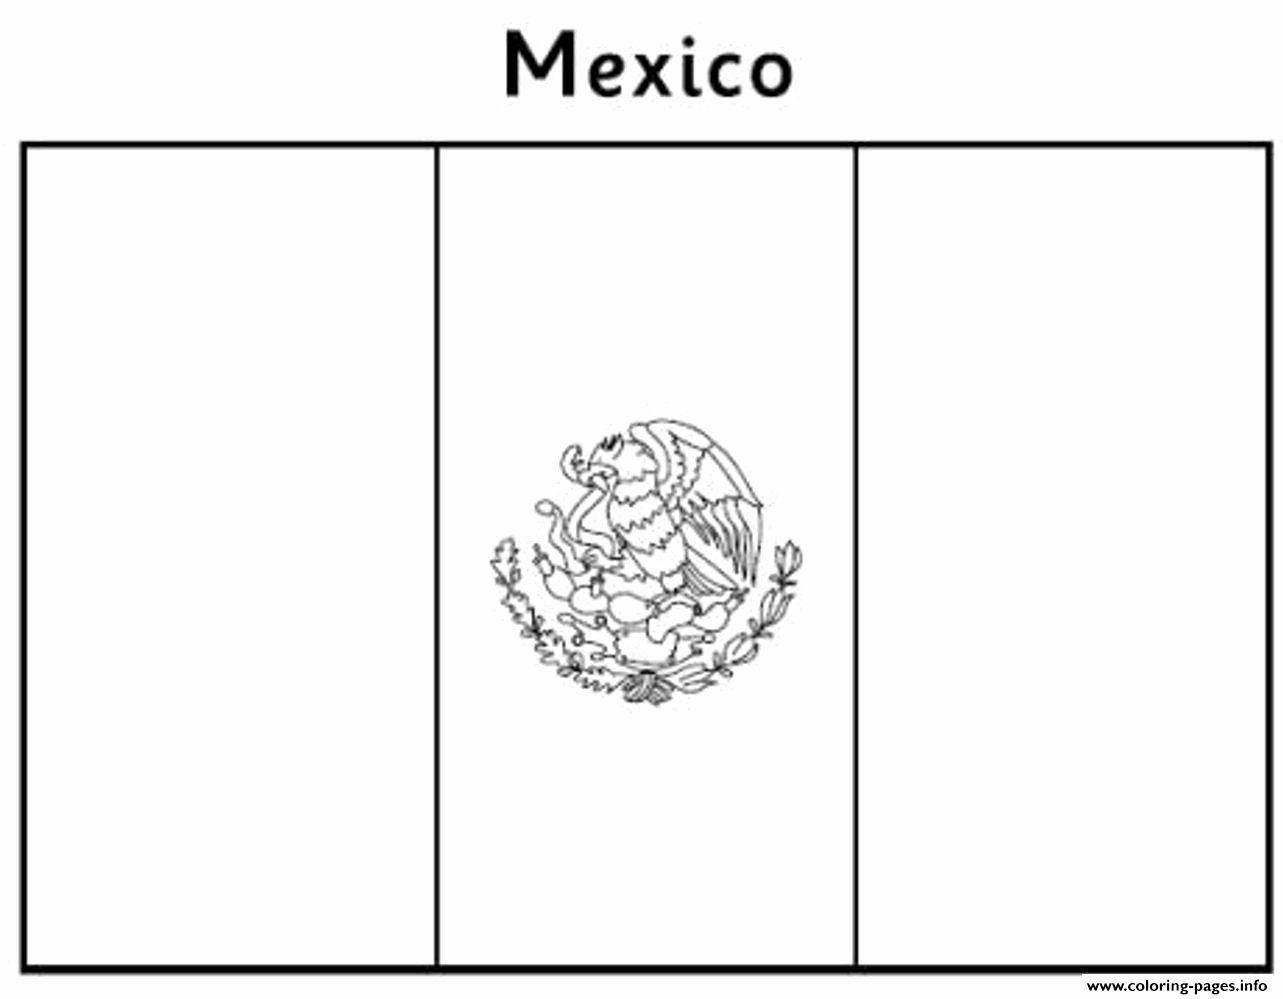 The Drawing Book For Kids Pdf Lovely Coloring Pages Mexican Flag Coloring Page Mexican Flag In 2020 Flag Coloring Pages Mexican Flags World Map Coloring Page